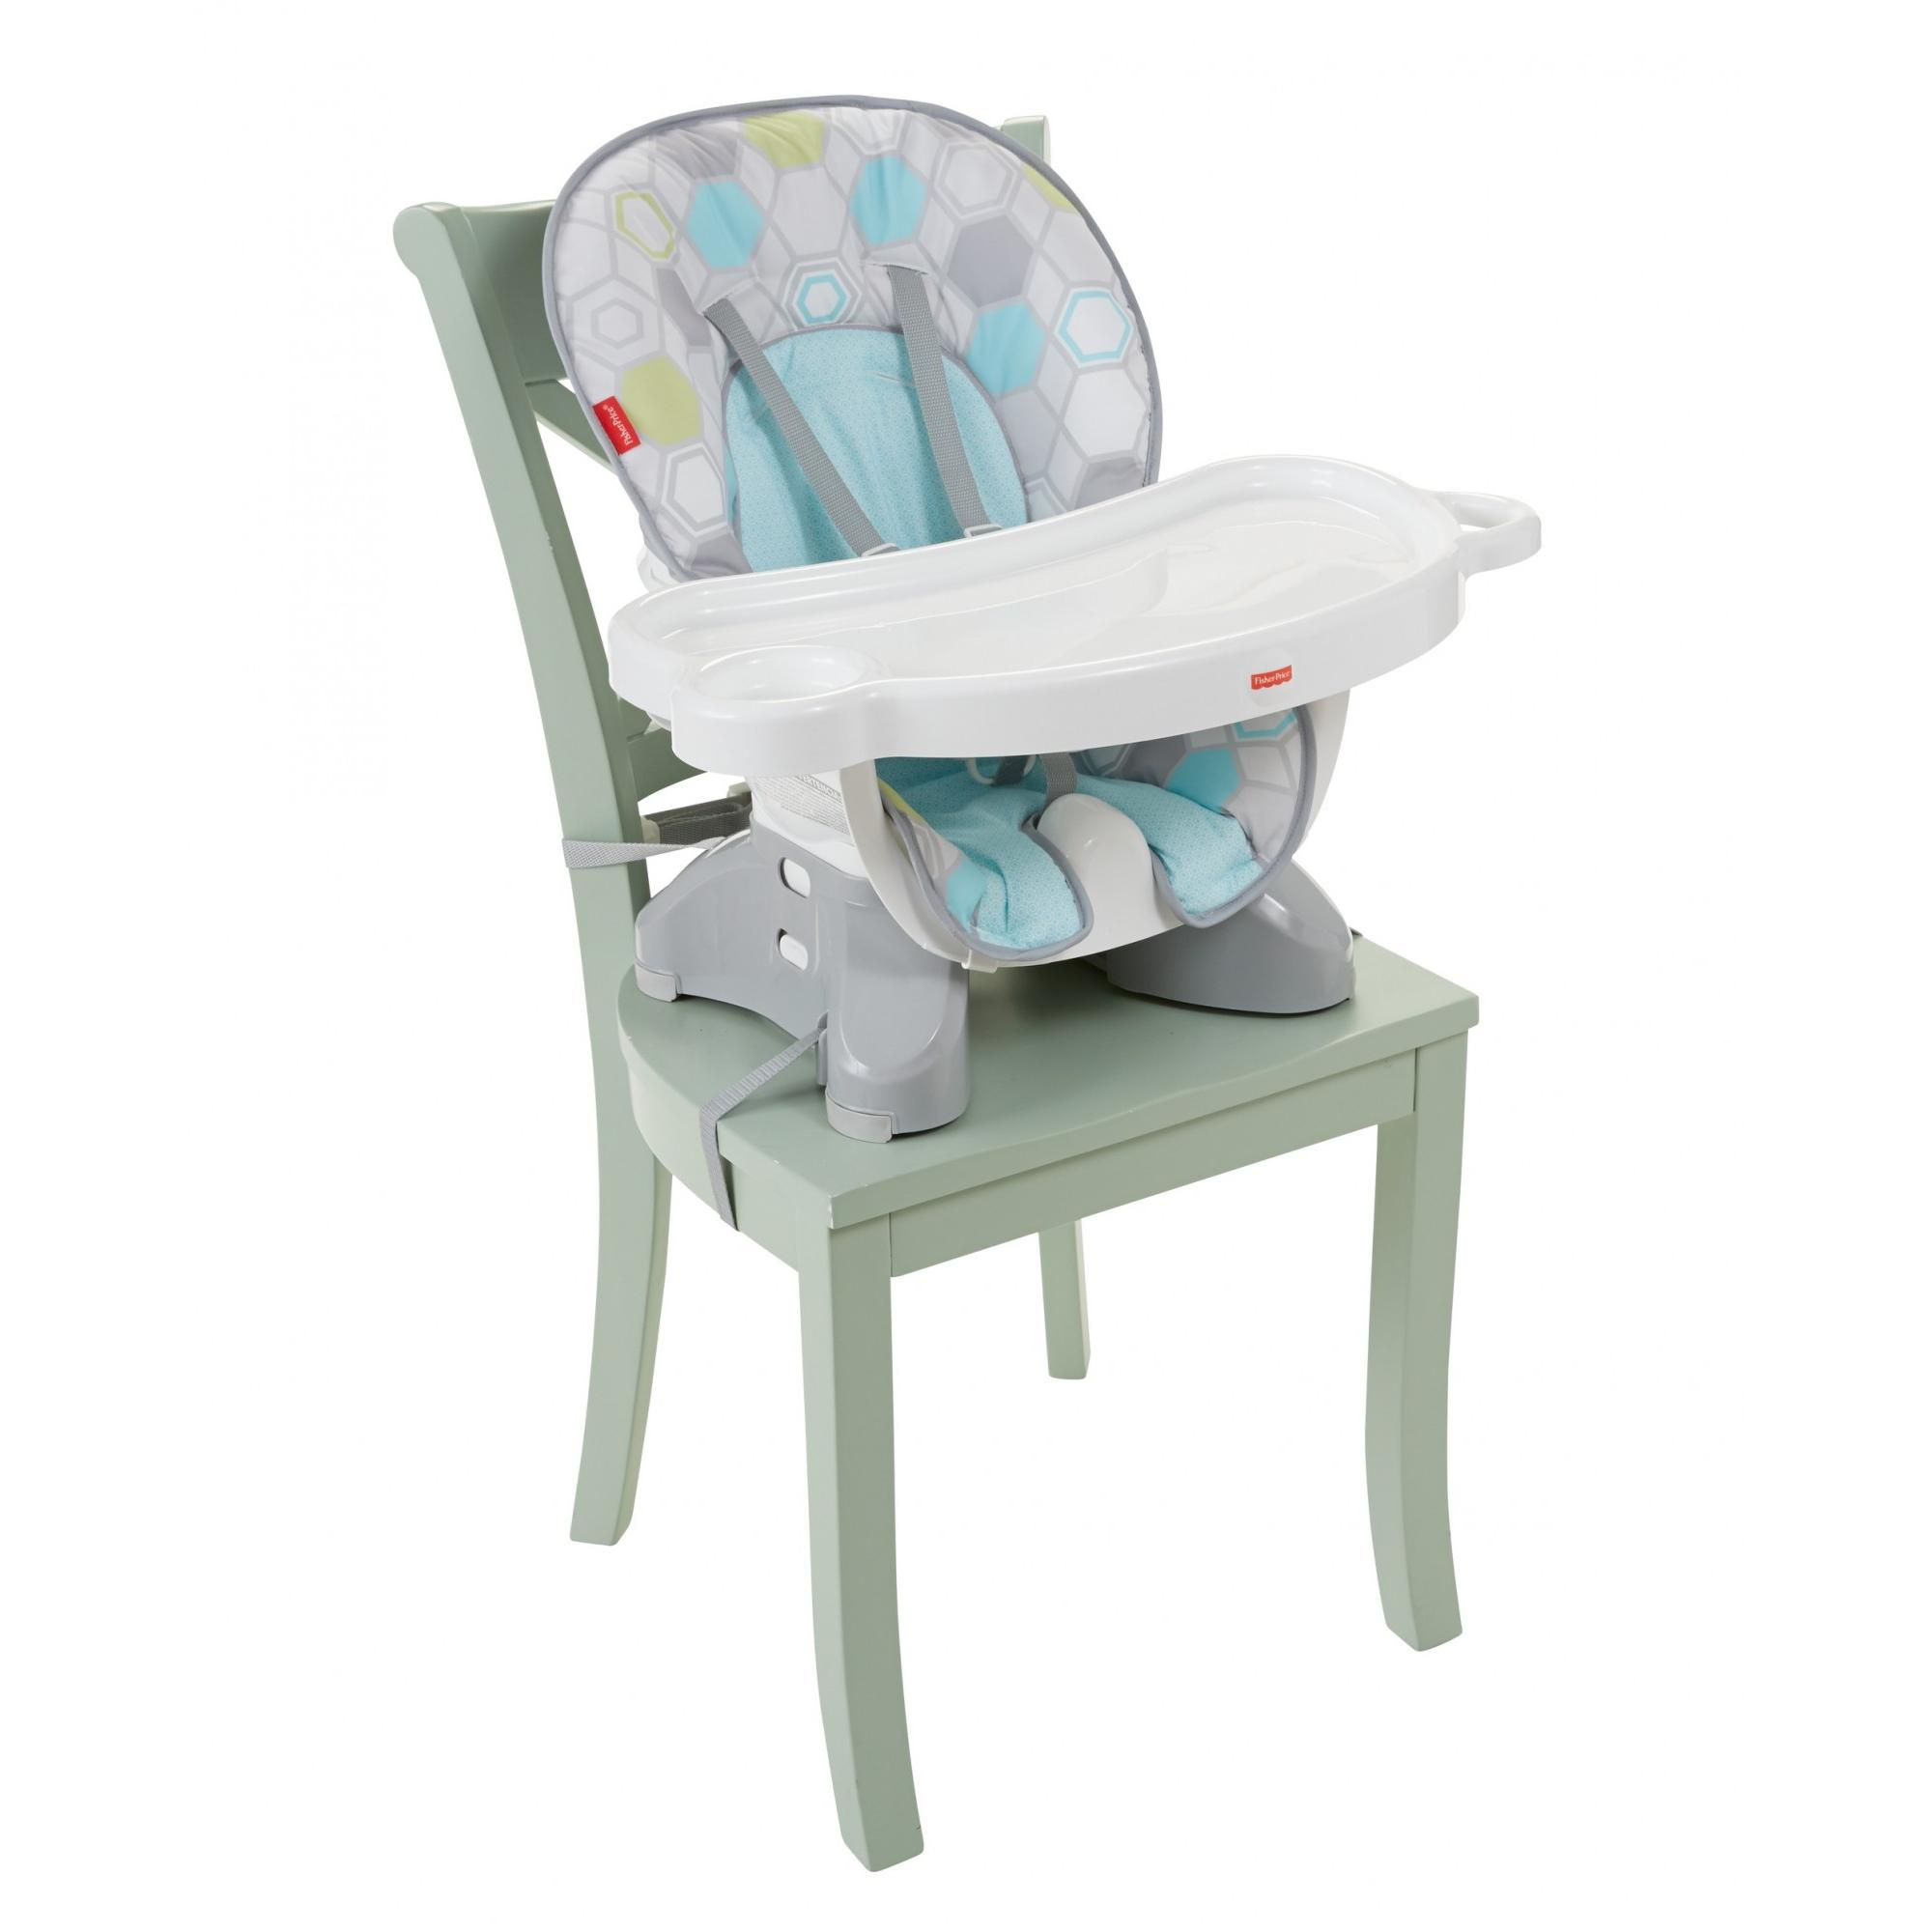 fisher-price space saver high chair - walmart